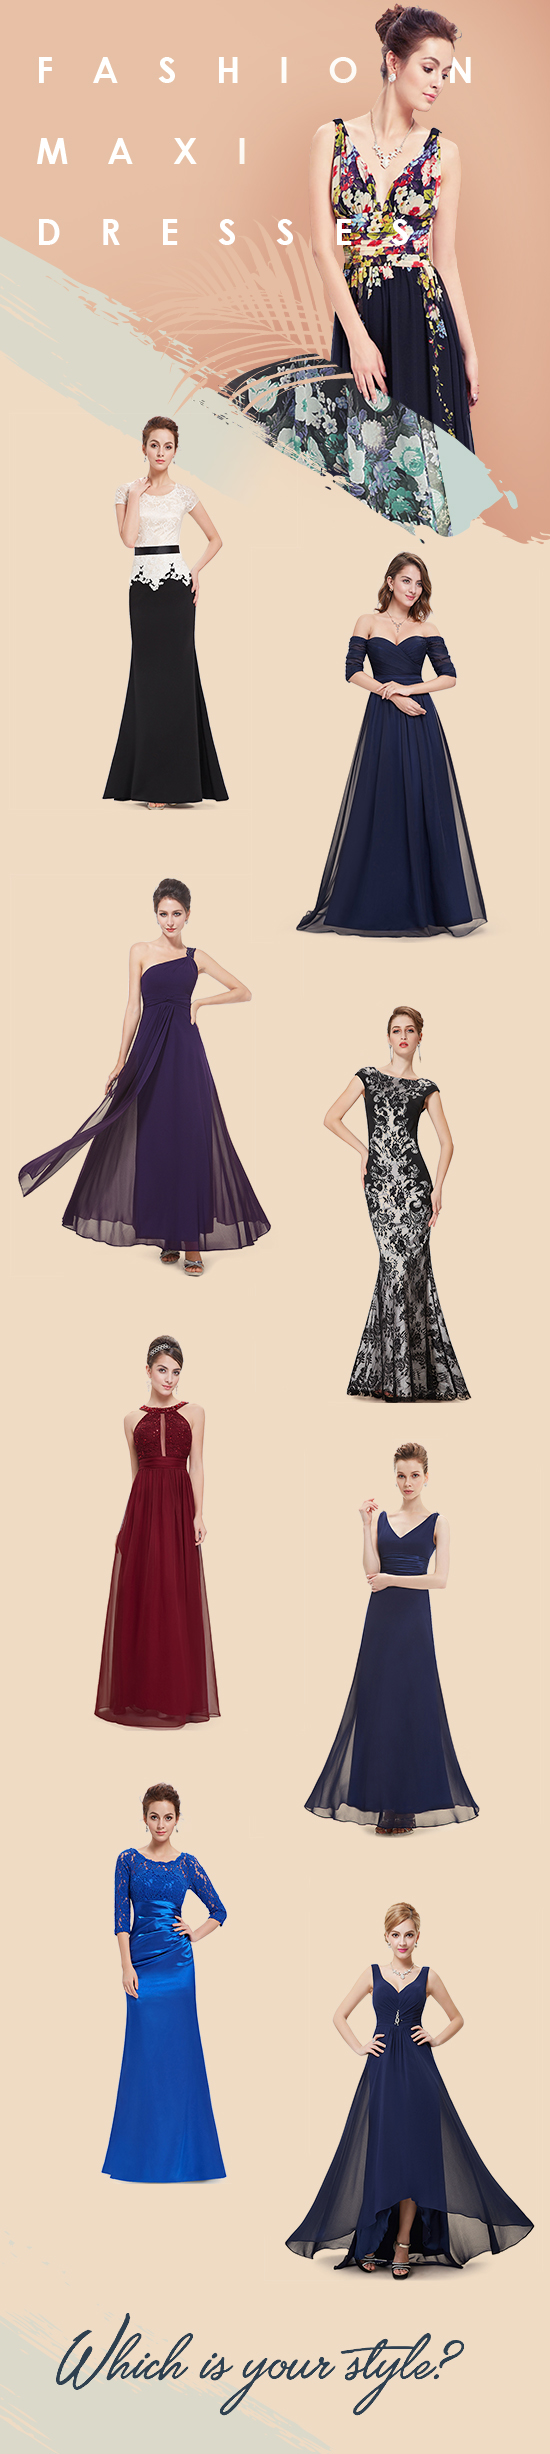 Fashion Maxi Dresses Which is your style Fashiondresses Fabulous